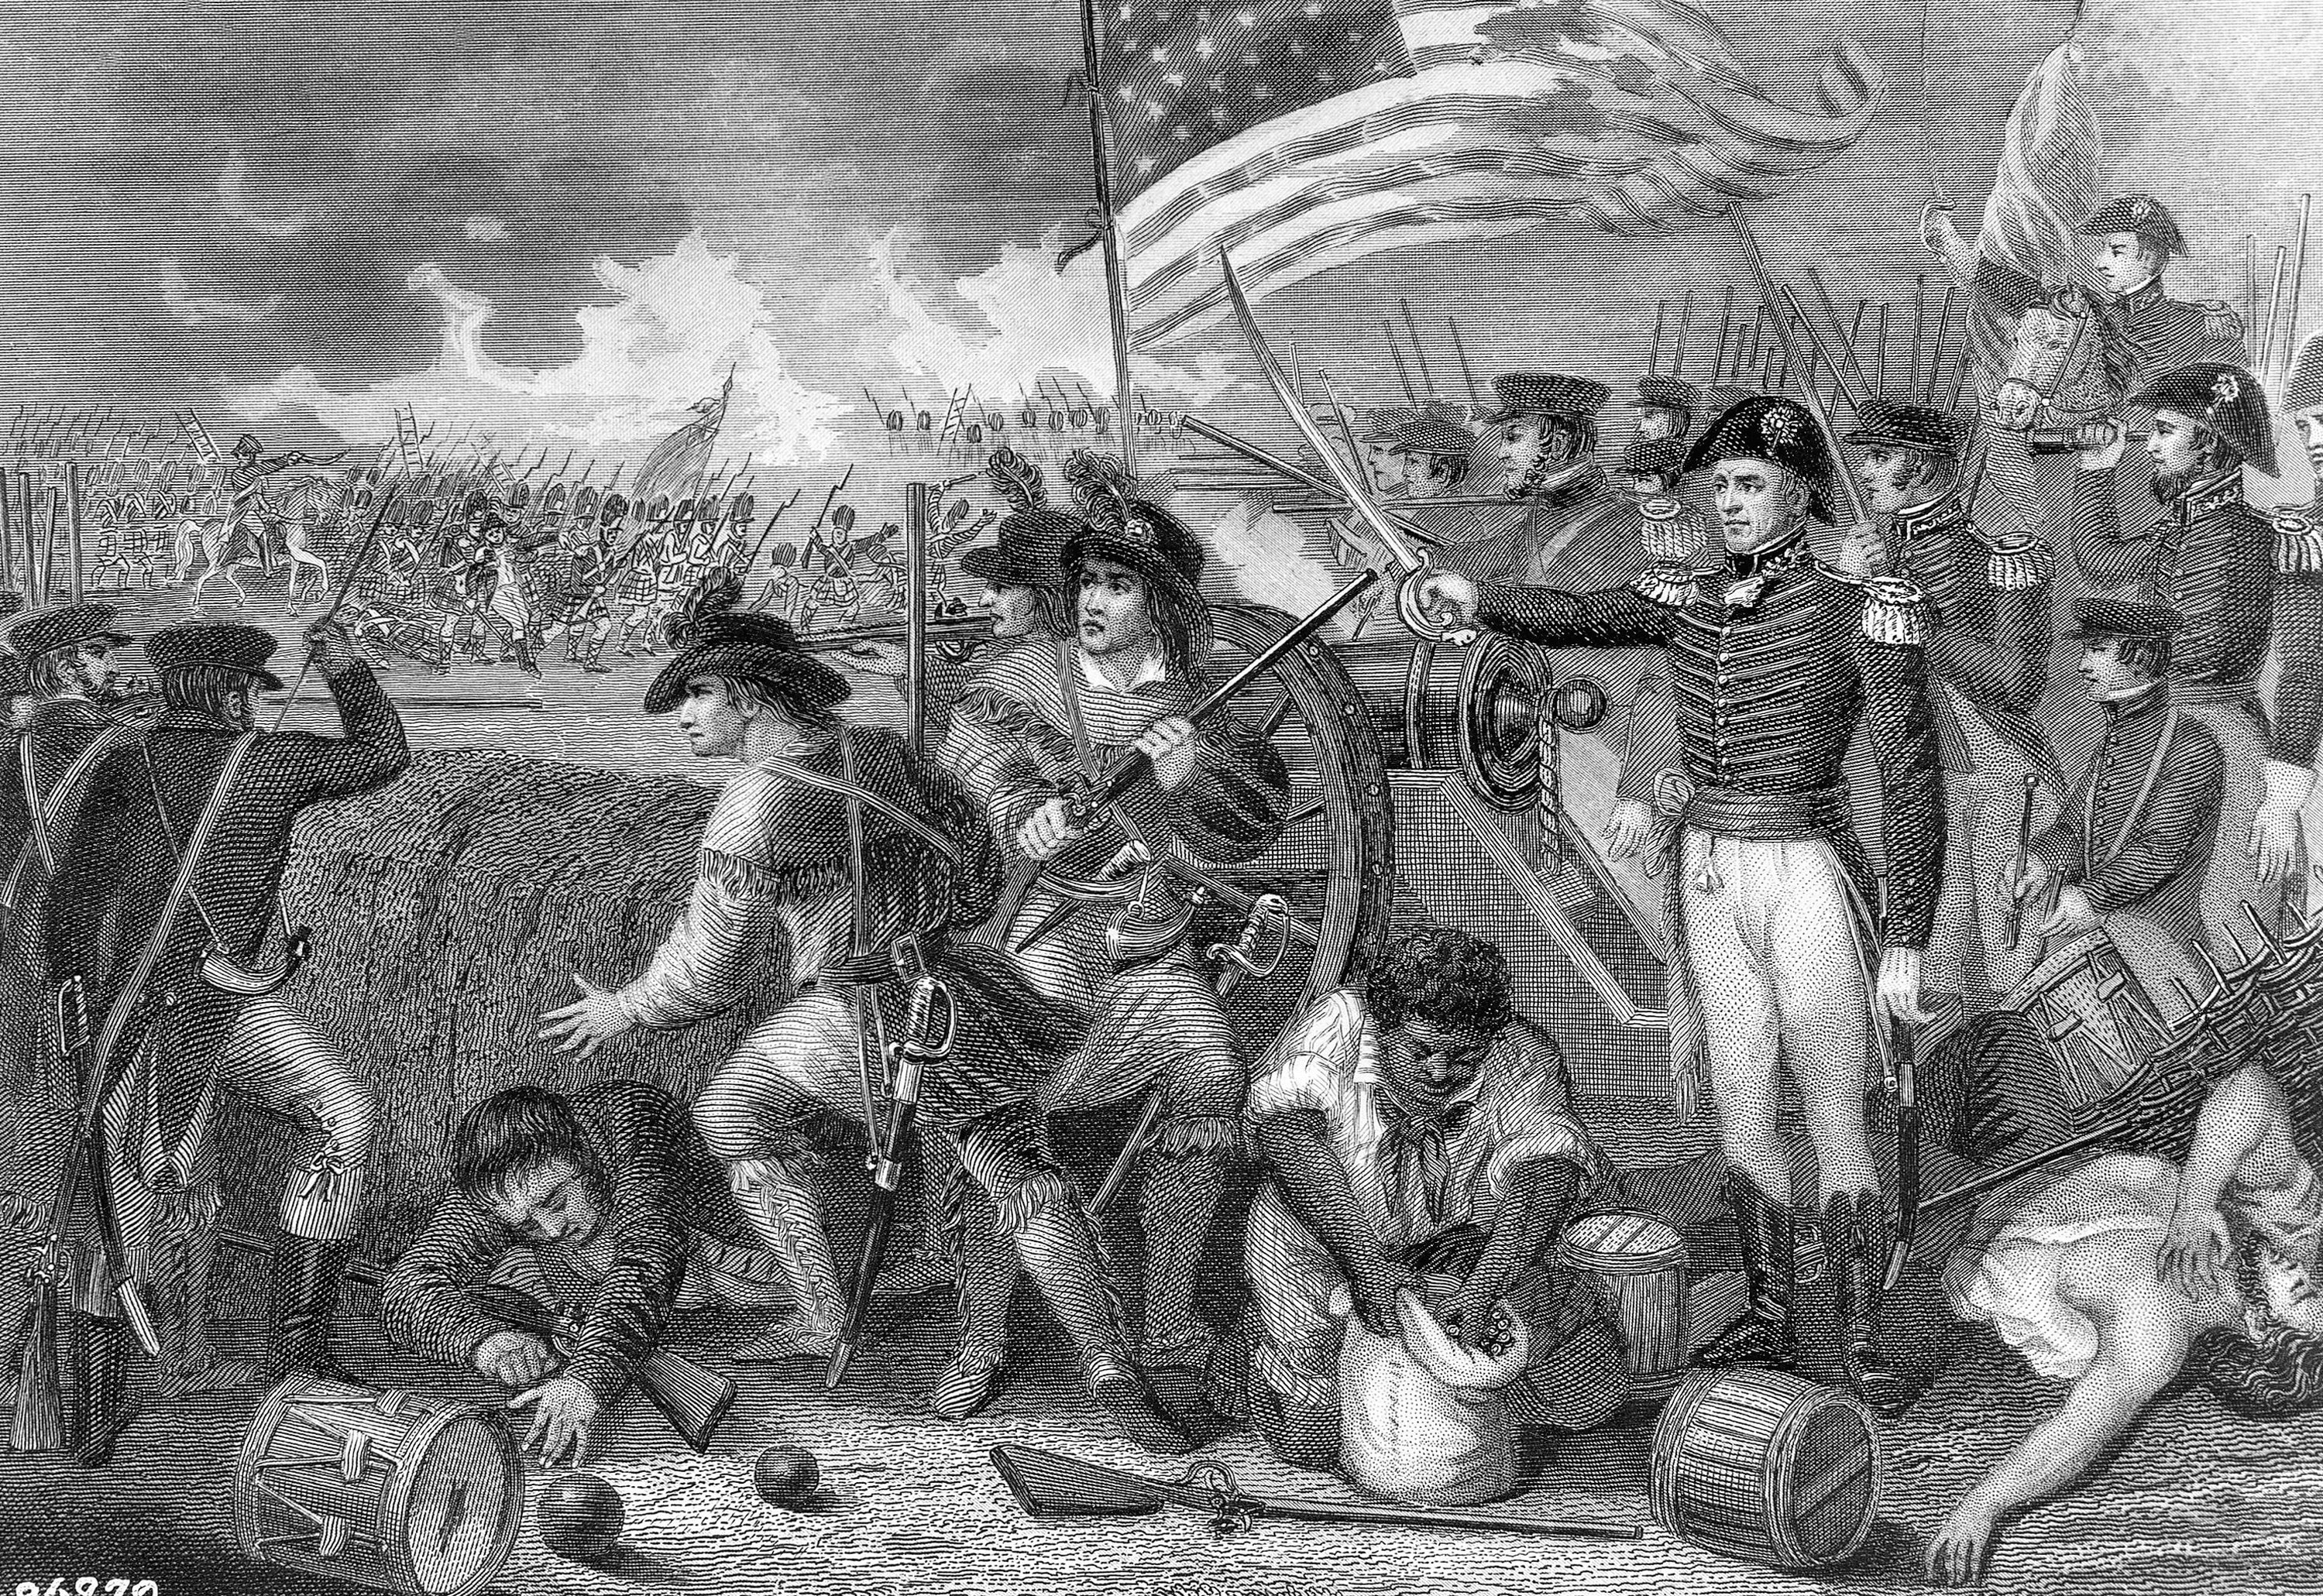 Battle of New Orleans showing General Andrew Jackson and his troops overcoming the British , in 1815, and scoring a victory which gave him a place of great popularity whit the people